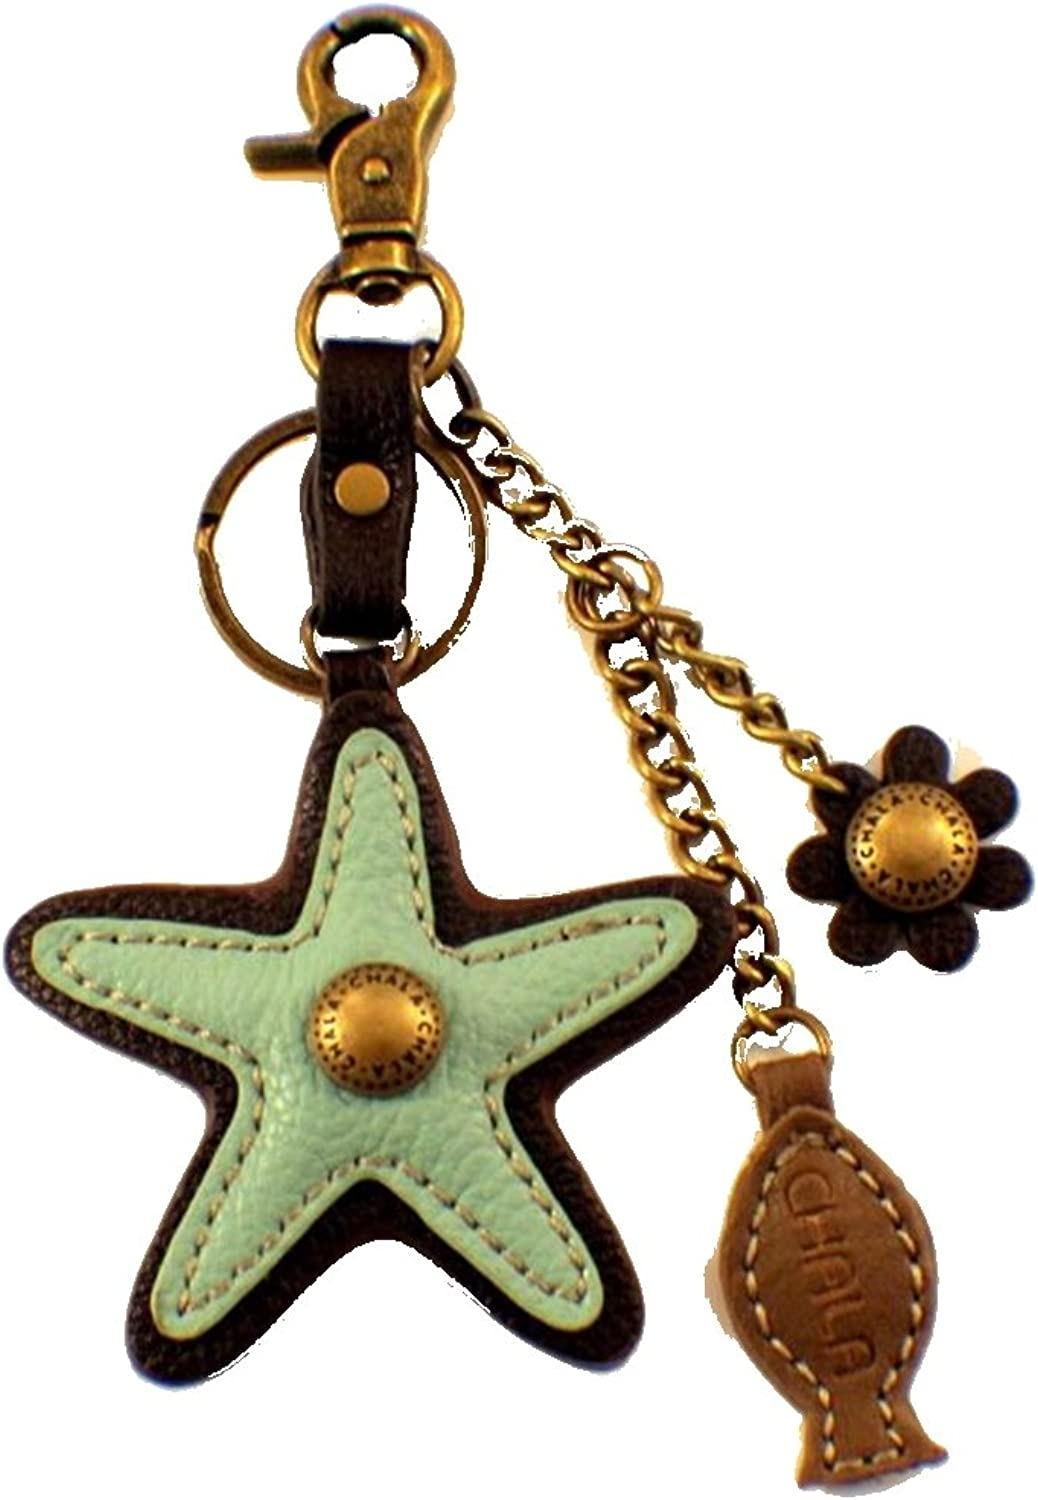 Chala Aqua Starfish Charming Key Chain Purse ag Fob Charm